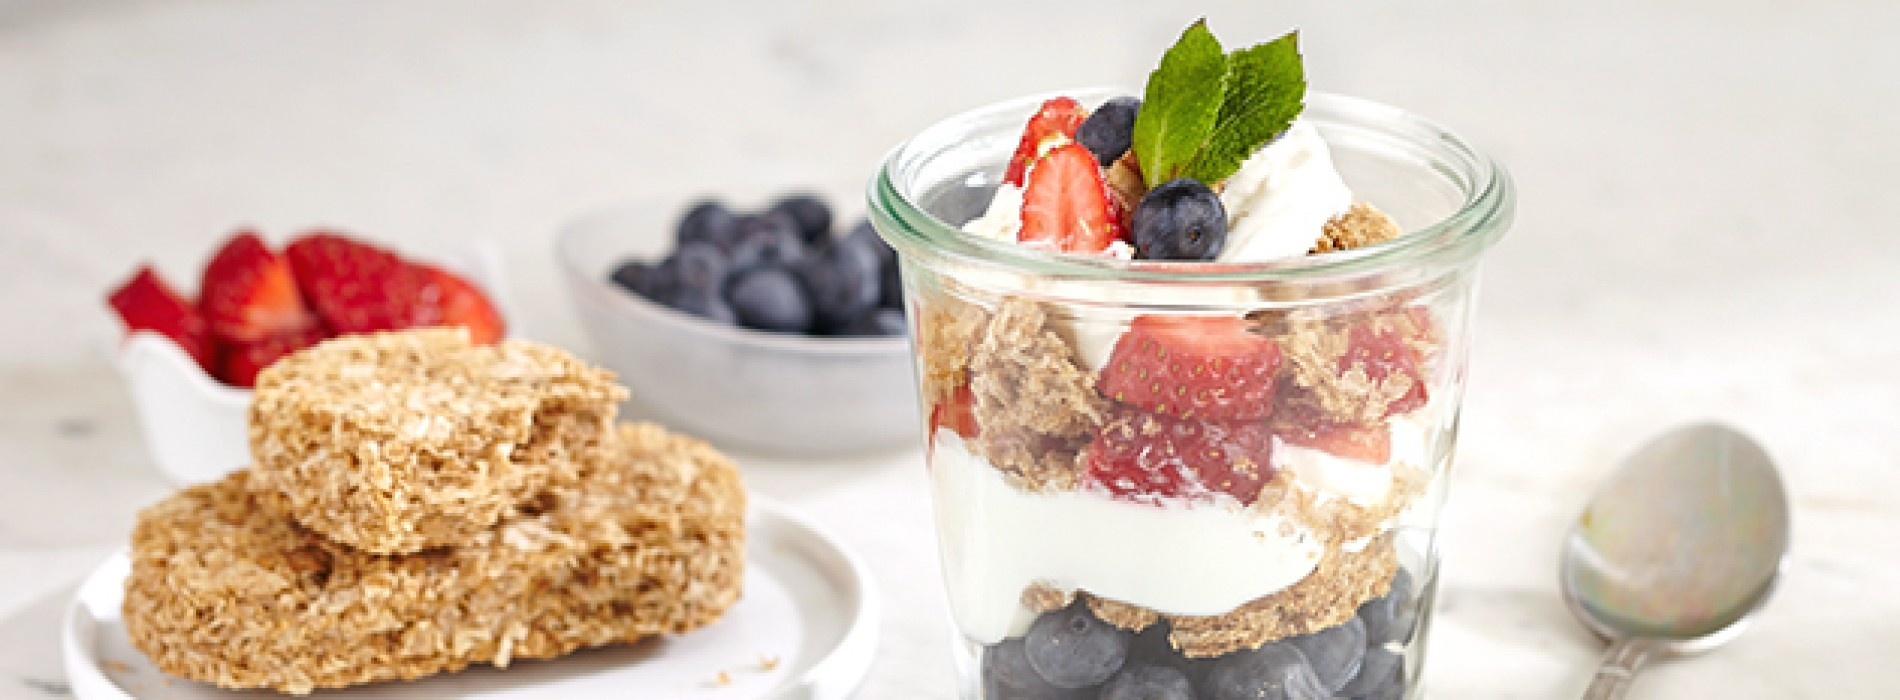 Sponsored Post: Weetabix Blueberry Parfait